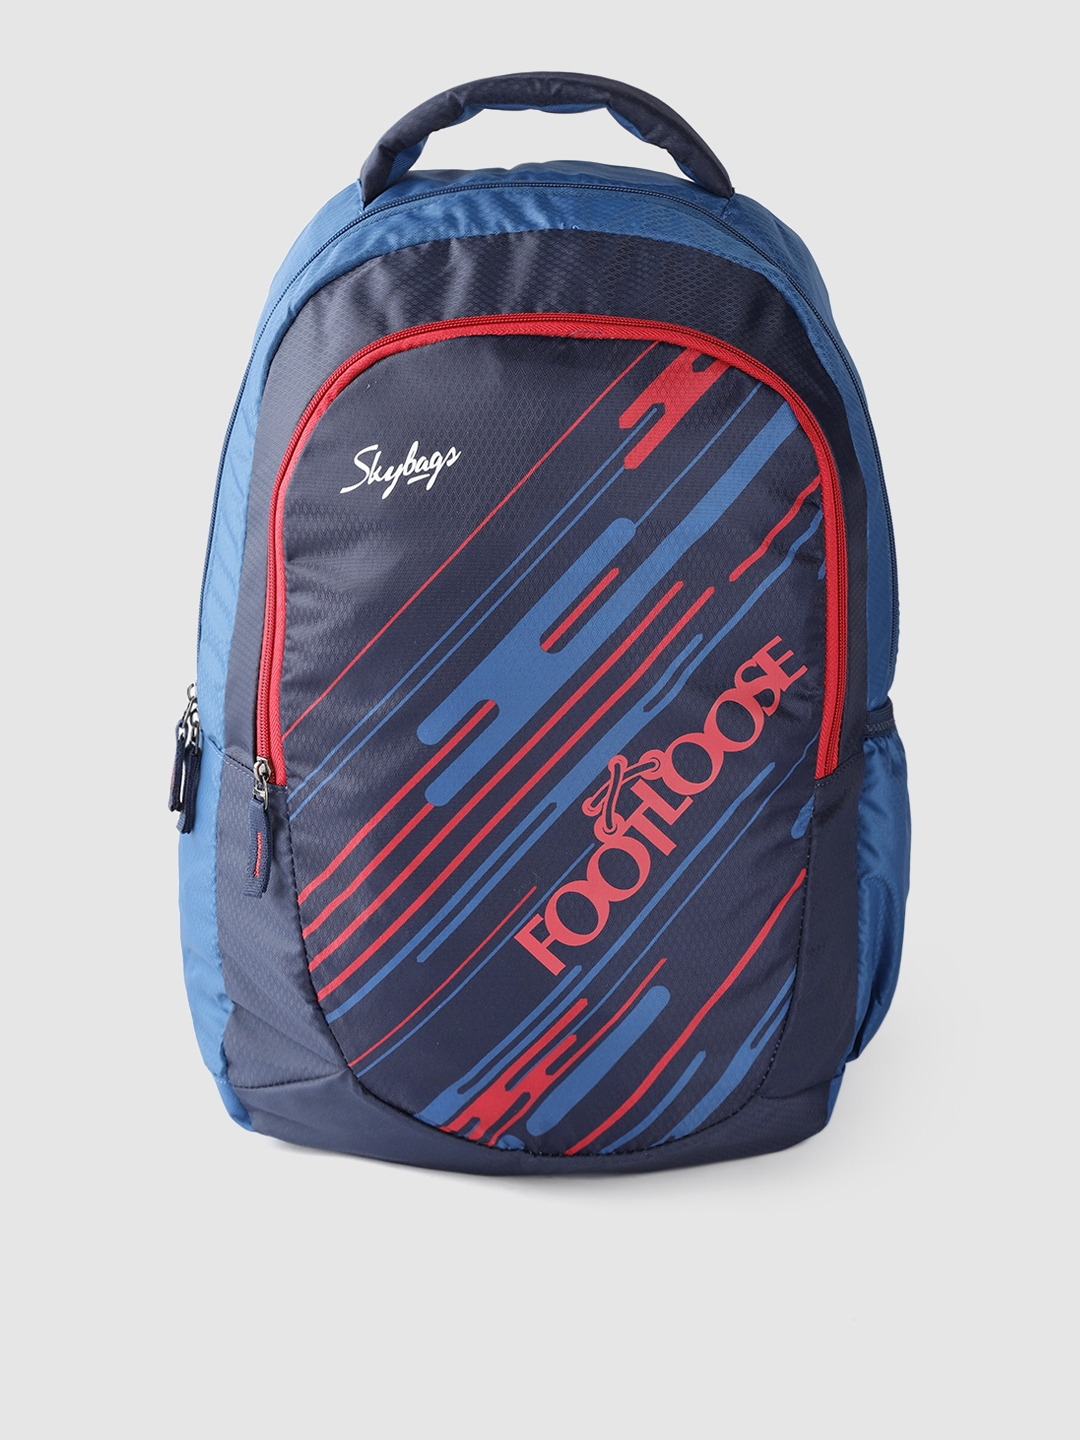 Skybags Unisex Blue   Red Printed Laptop Backpack